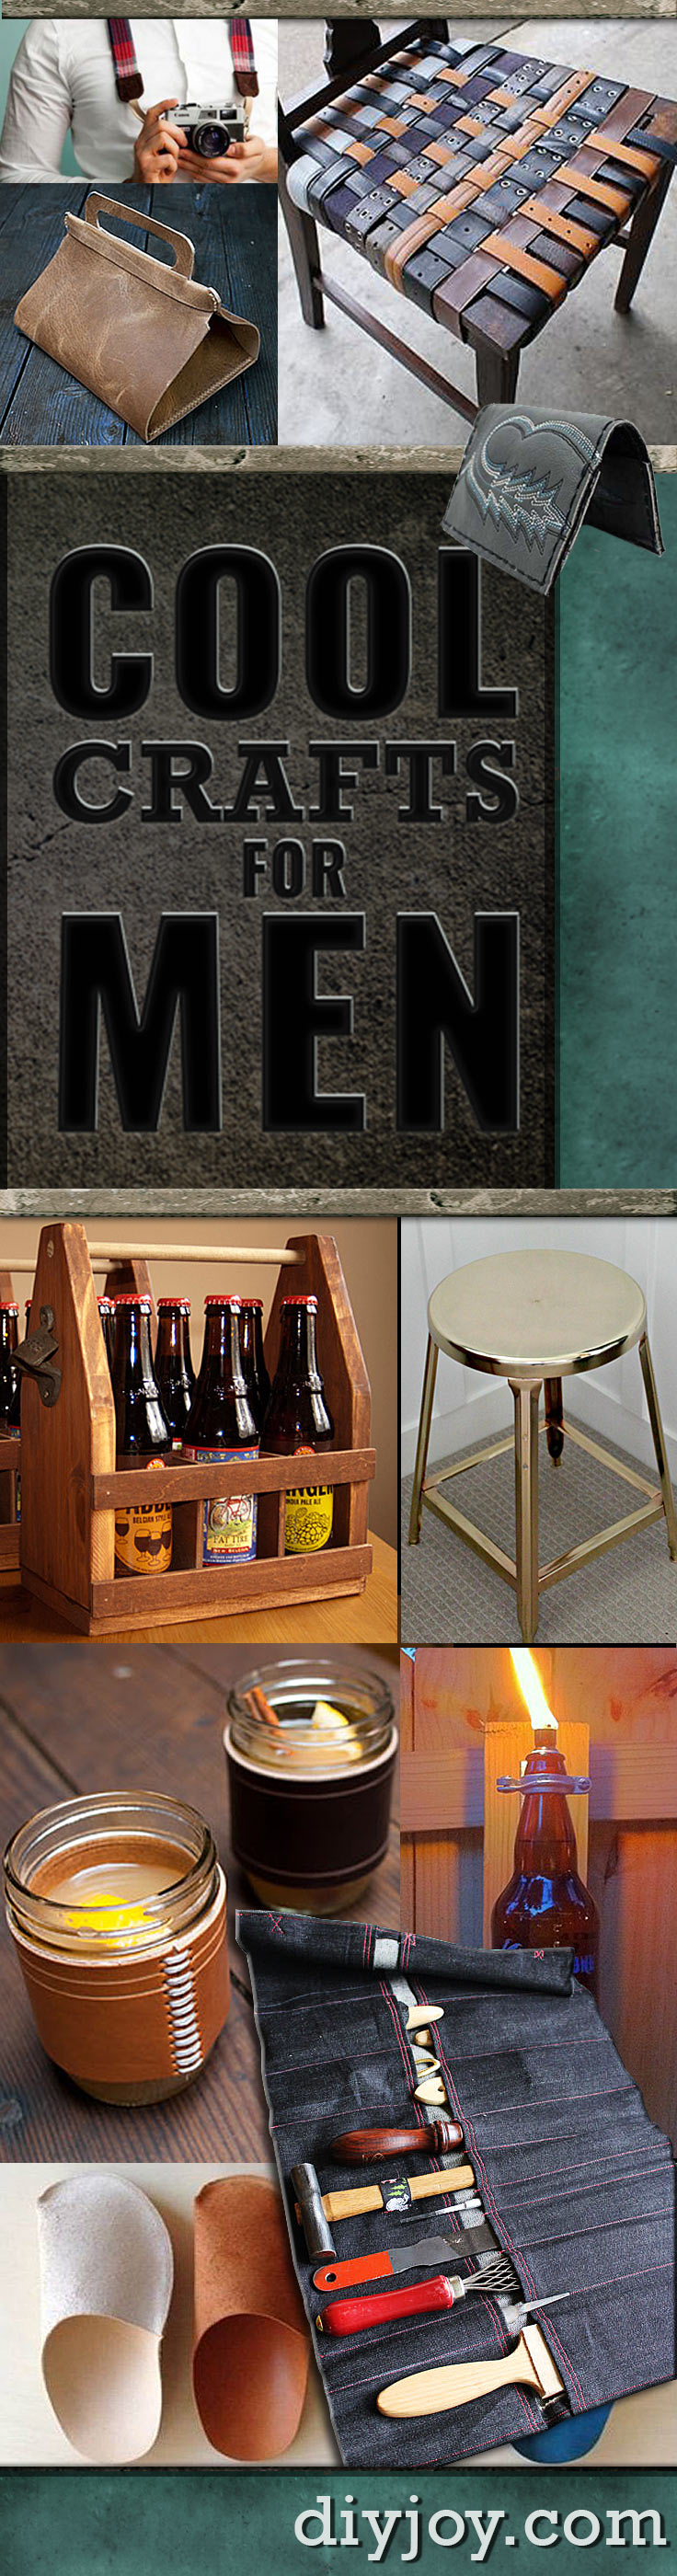 Awesome Crafts for Men and Manly DIY Project Ideas Guys Love - Cool Fathers Day Gifts and Ideas for Dad - Fun Man Cave Ideas, Homemade Gifts, Manly Decor, Games and Gear. Tutorials for Creative Projects to Make This Weekend   Super DIY Gift Ideas for the Boyfriend, Husband, Brother and Father - Dad http://diyjoy.com/diy-projects-for-men-crafts